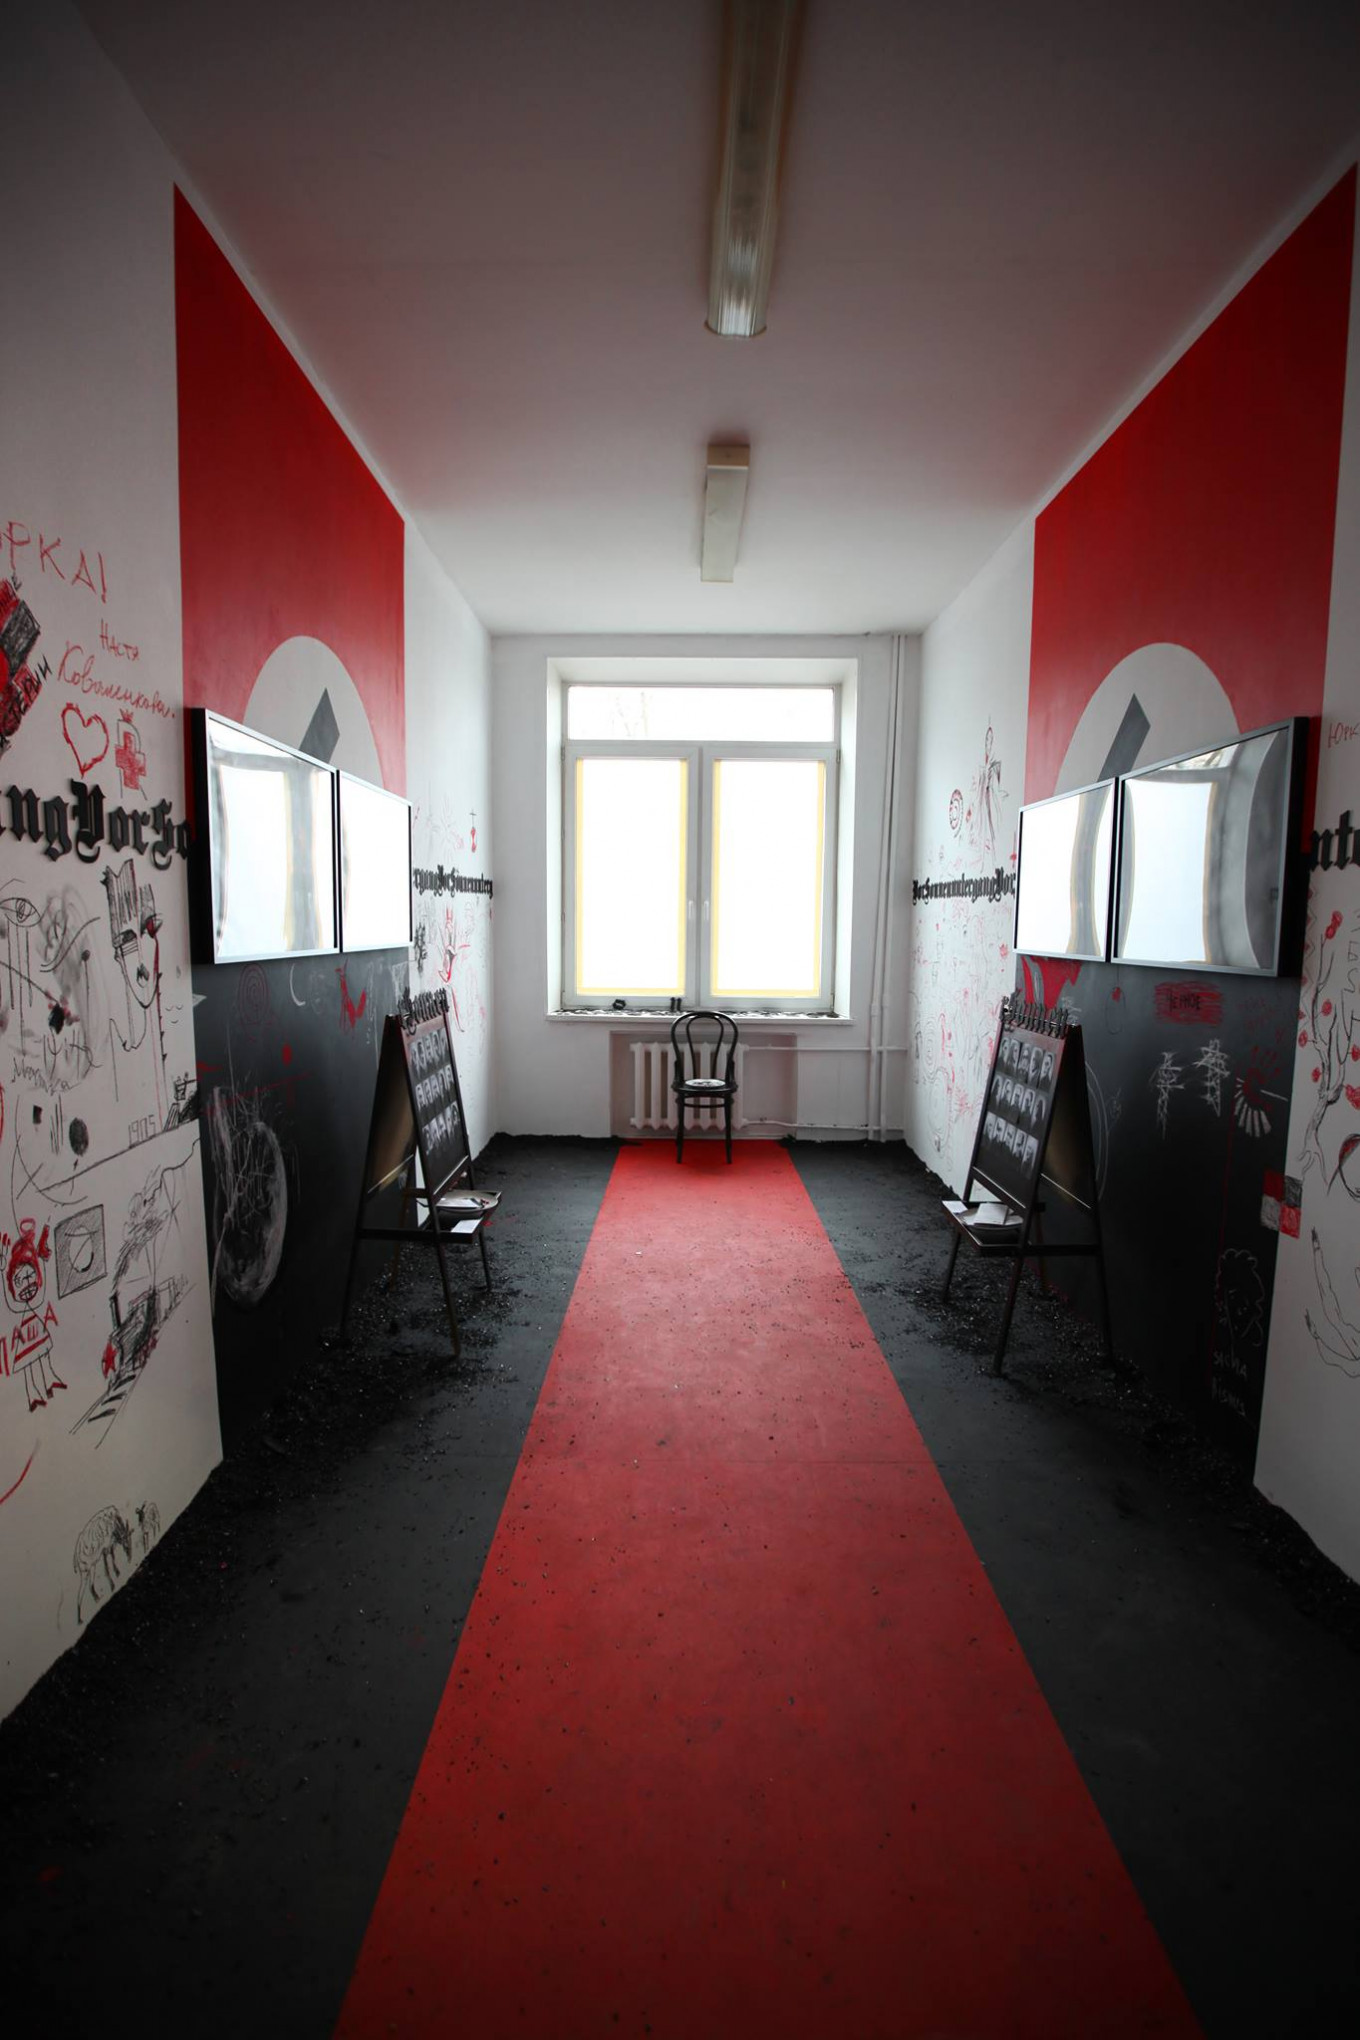 Yury Kharikov transformed his room into a black-and-red pavilion based on the motifs of the play 'Before Sunset.' POLINA BAKHTINA / FACEBOOK